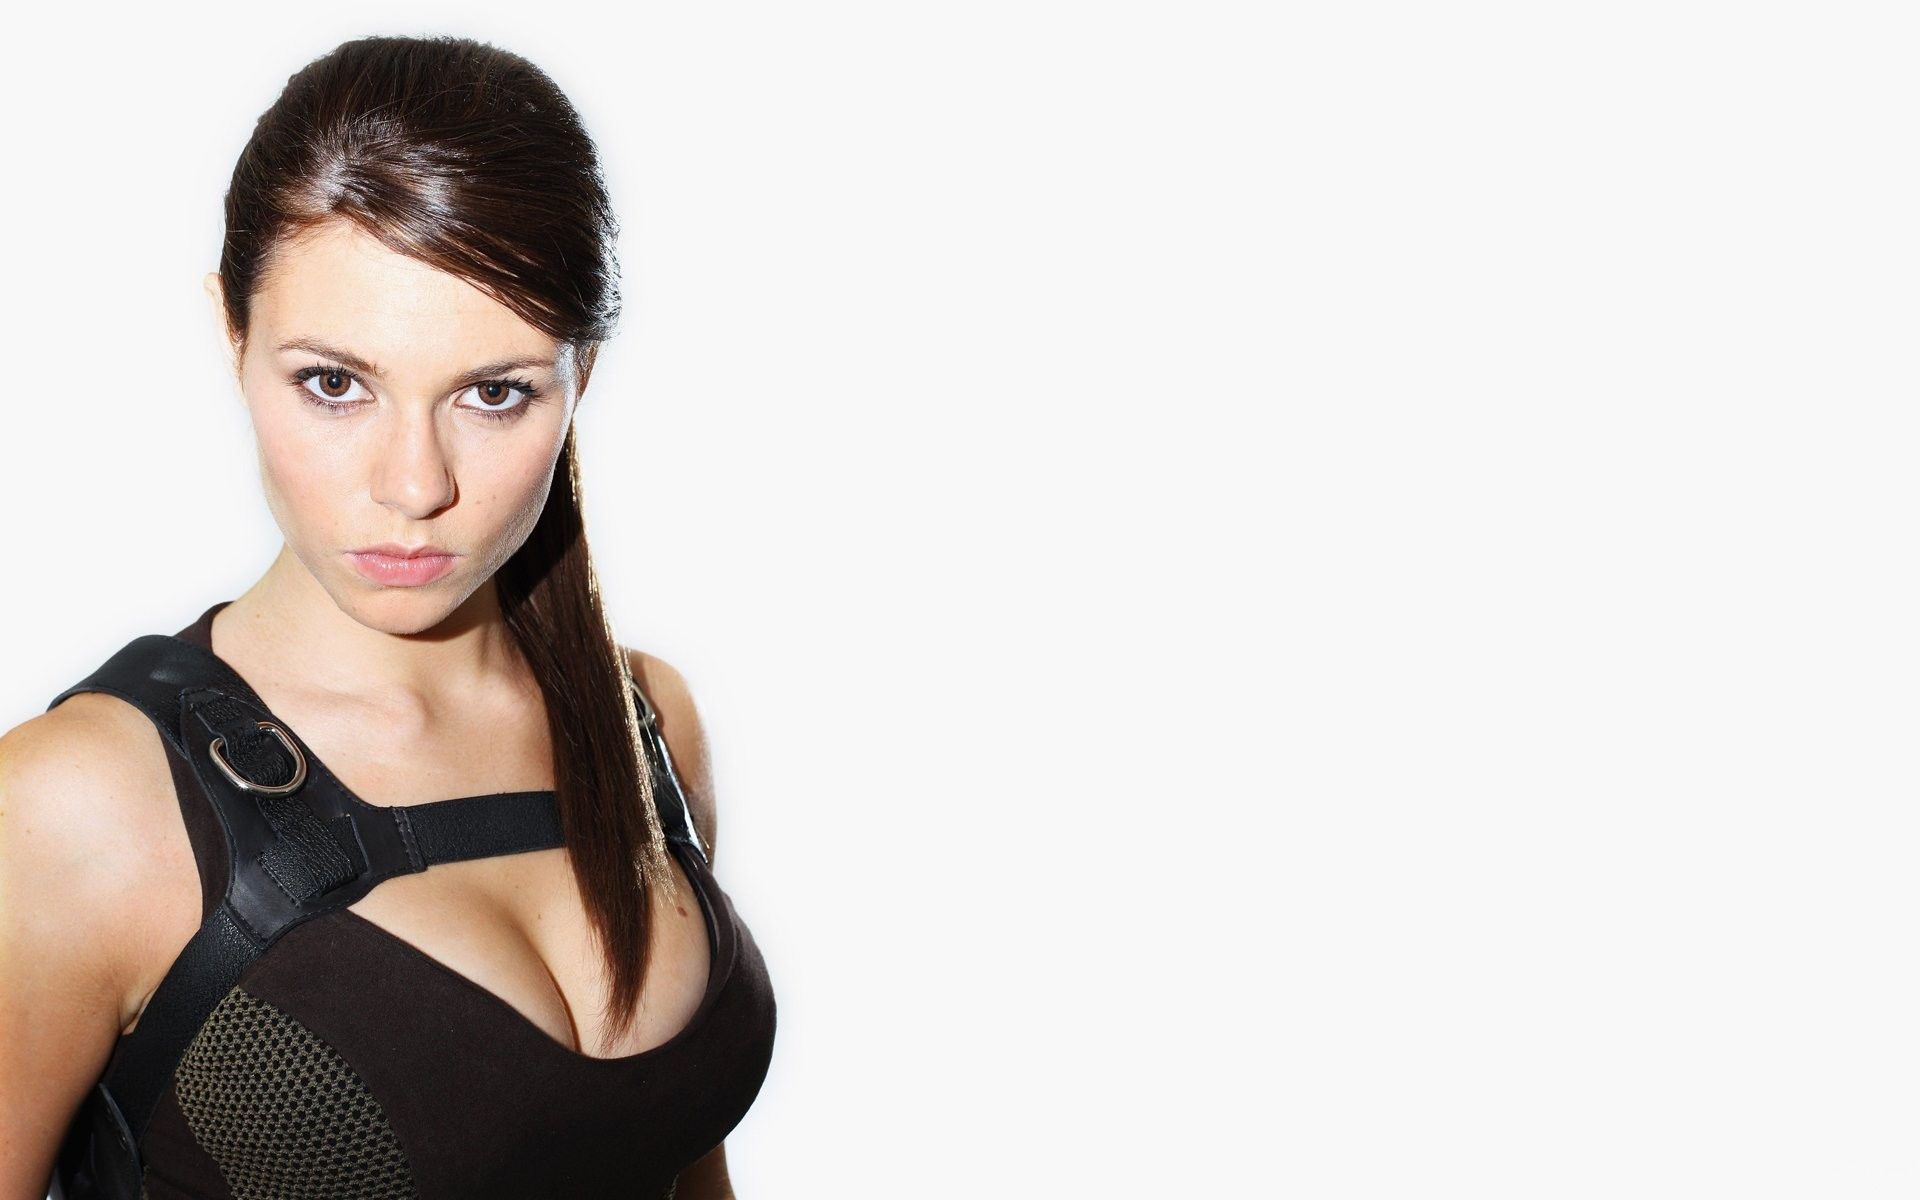 carrolls dating site Carroll dating and personals personal ads for carroll, ia are a great way to find a life partner, movie date, or a quick hookup personals are for people local to carroll, ia and are for ages 18 .